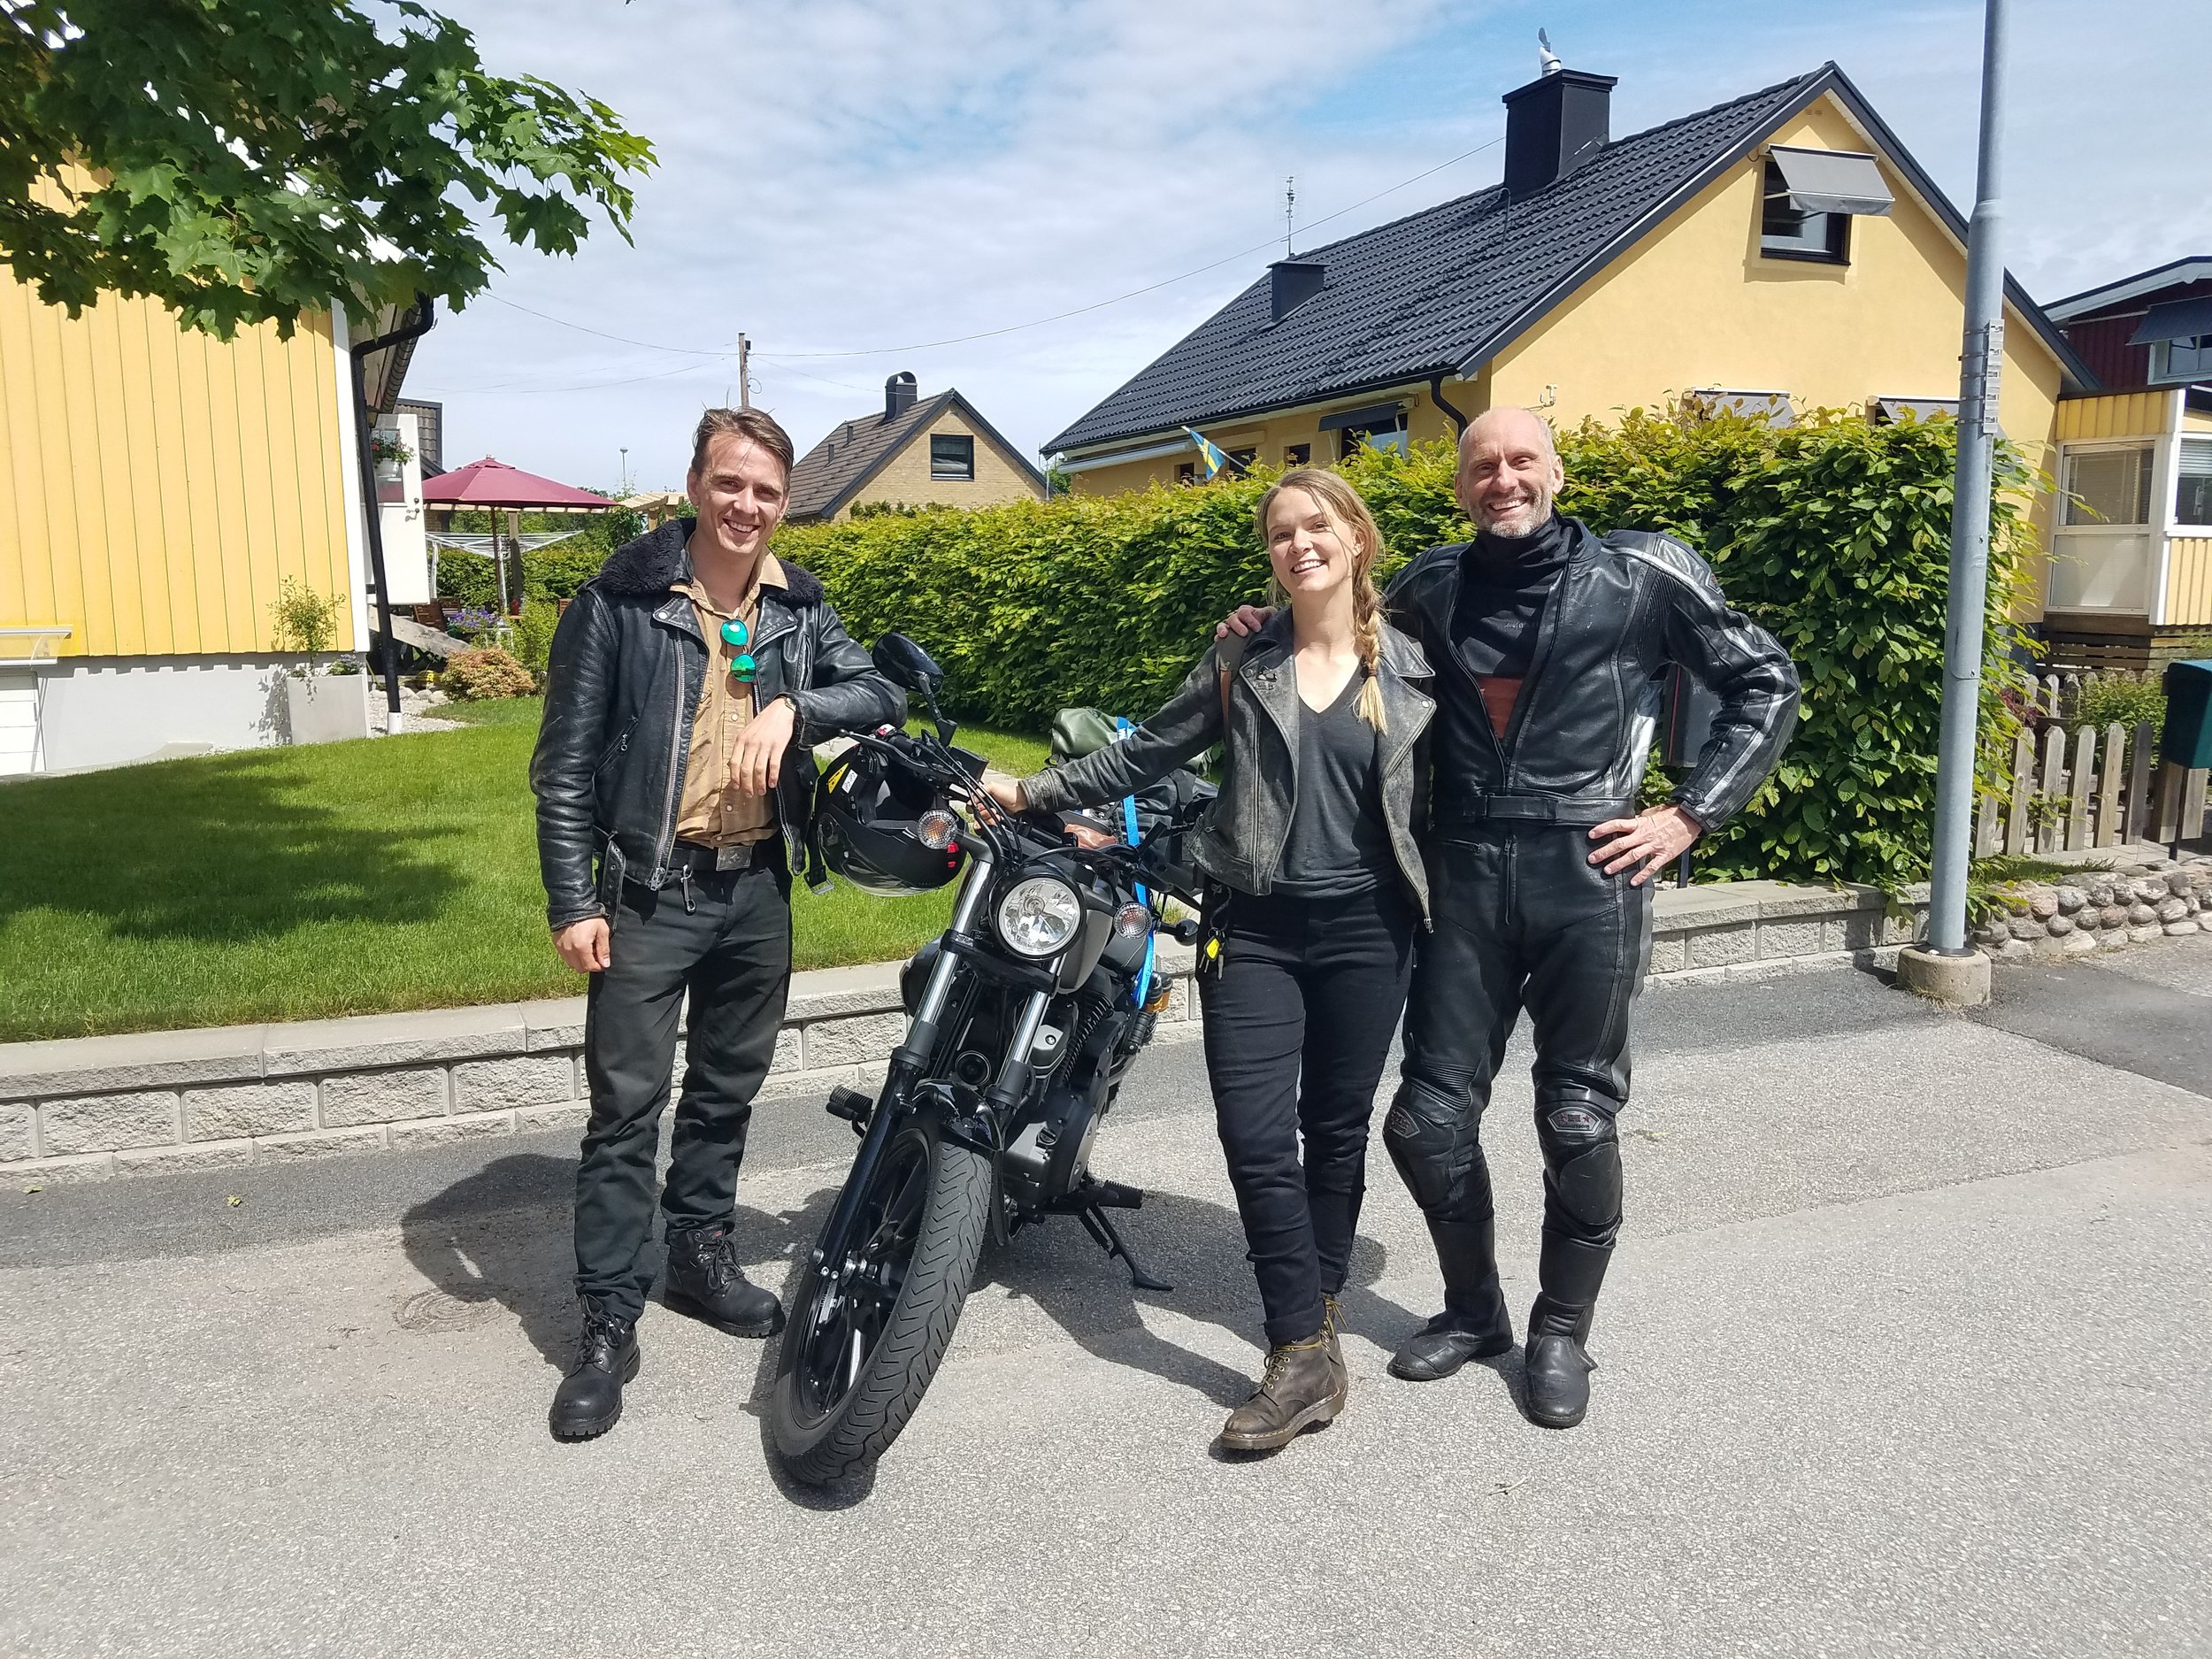 David, me and Urban in Trollhätten at the end of our ride together.